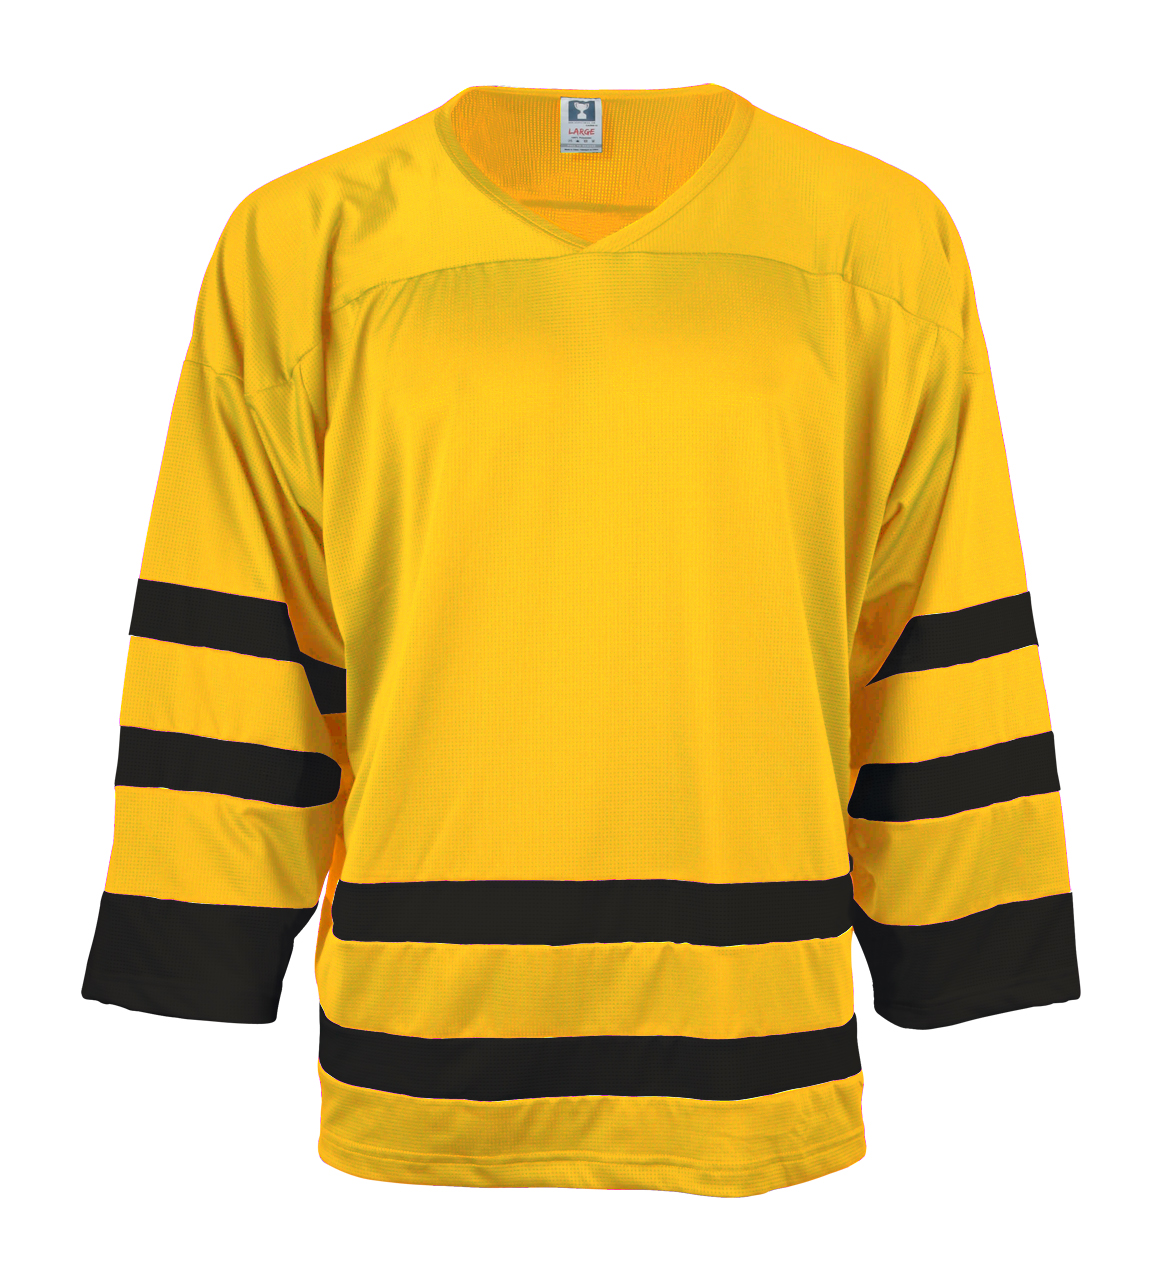 Picture of N3 SPORT Classic Striped Hockey Jersey